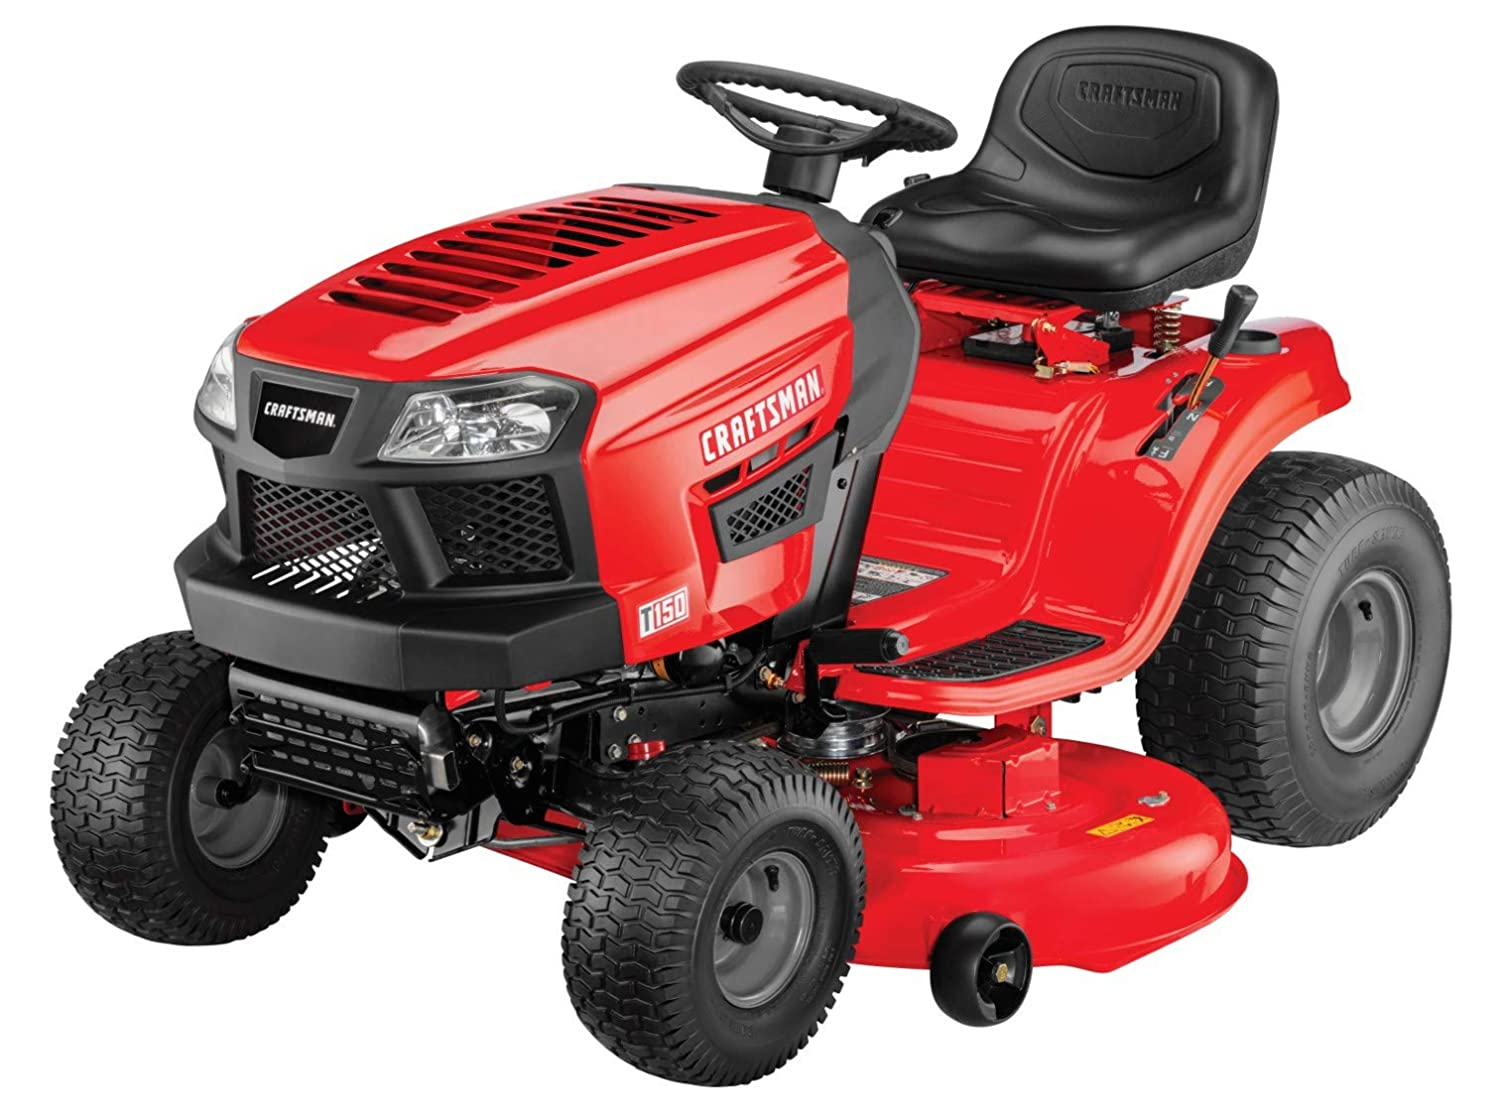 Craftsman T150 Gas Powered Riding Lawn Mower